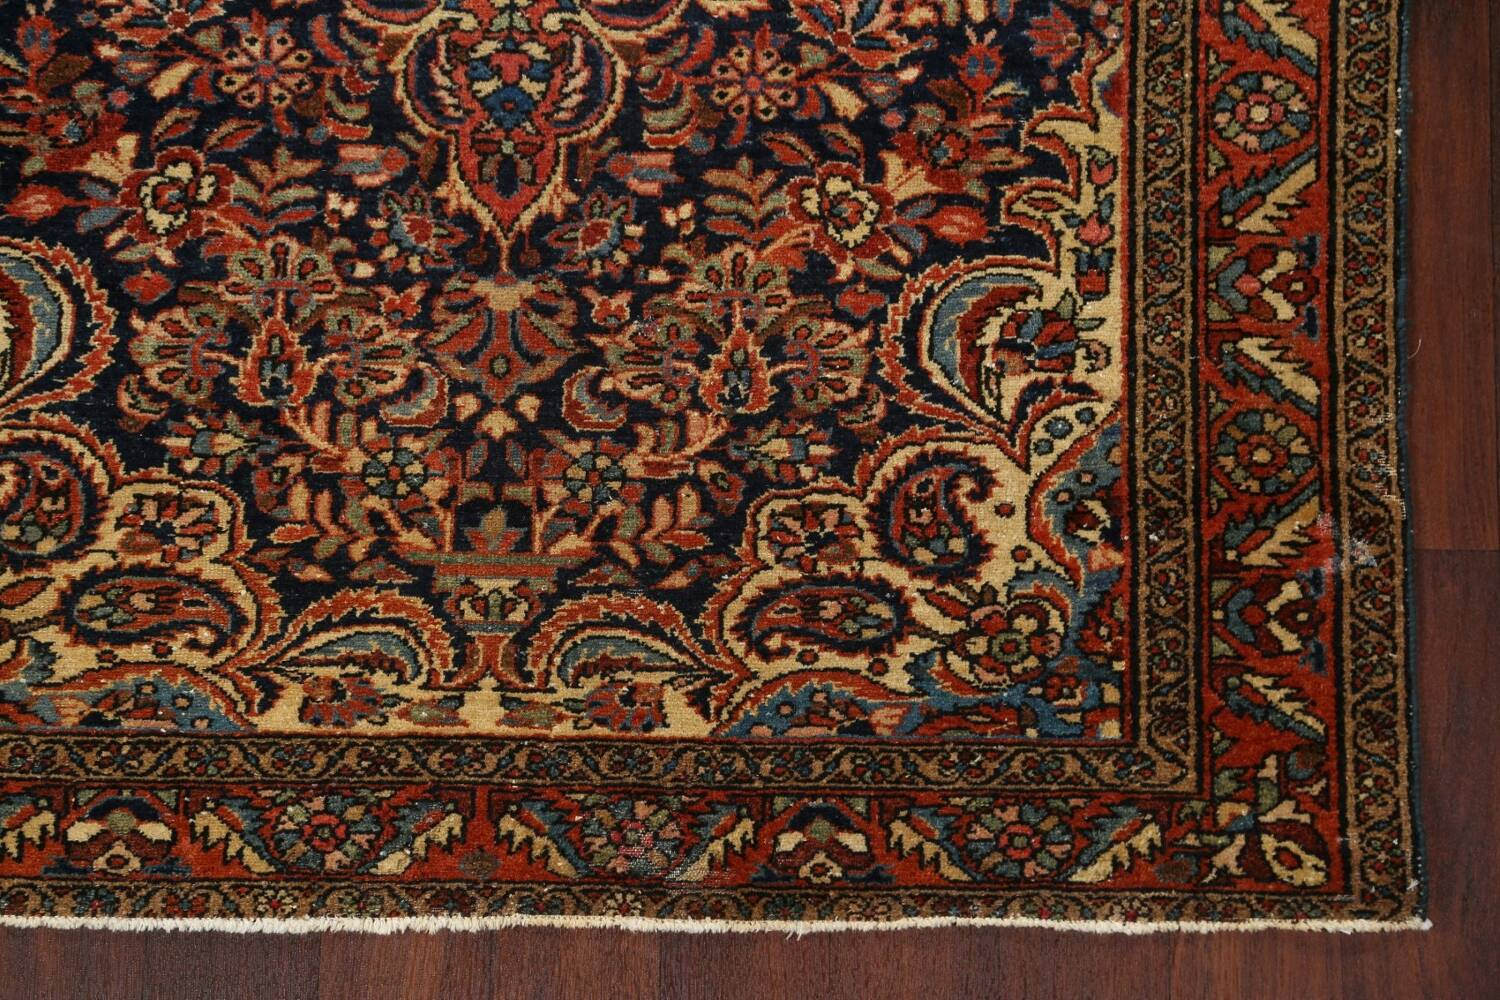 Antique Vegetable Dye Malayer Persian Area Rug 5x6 image 6